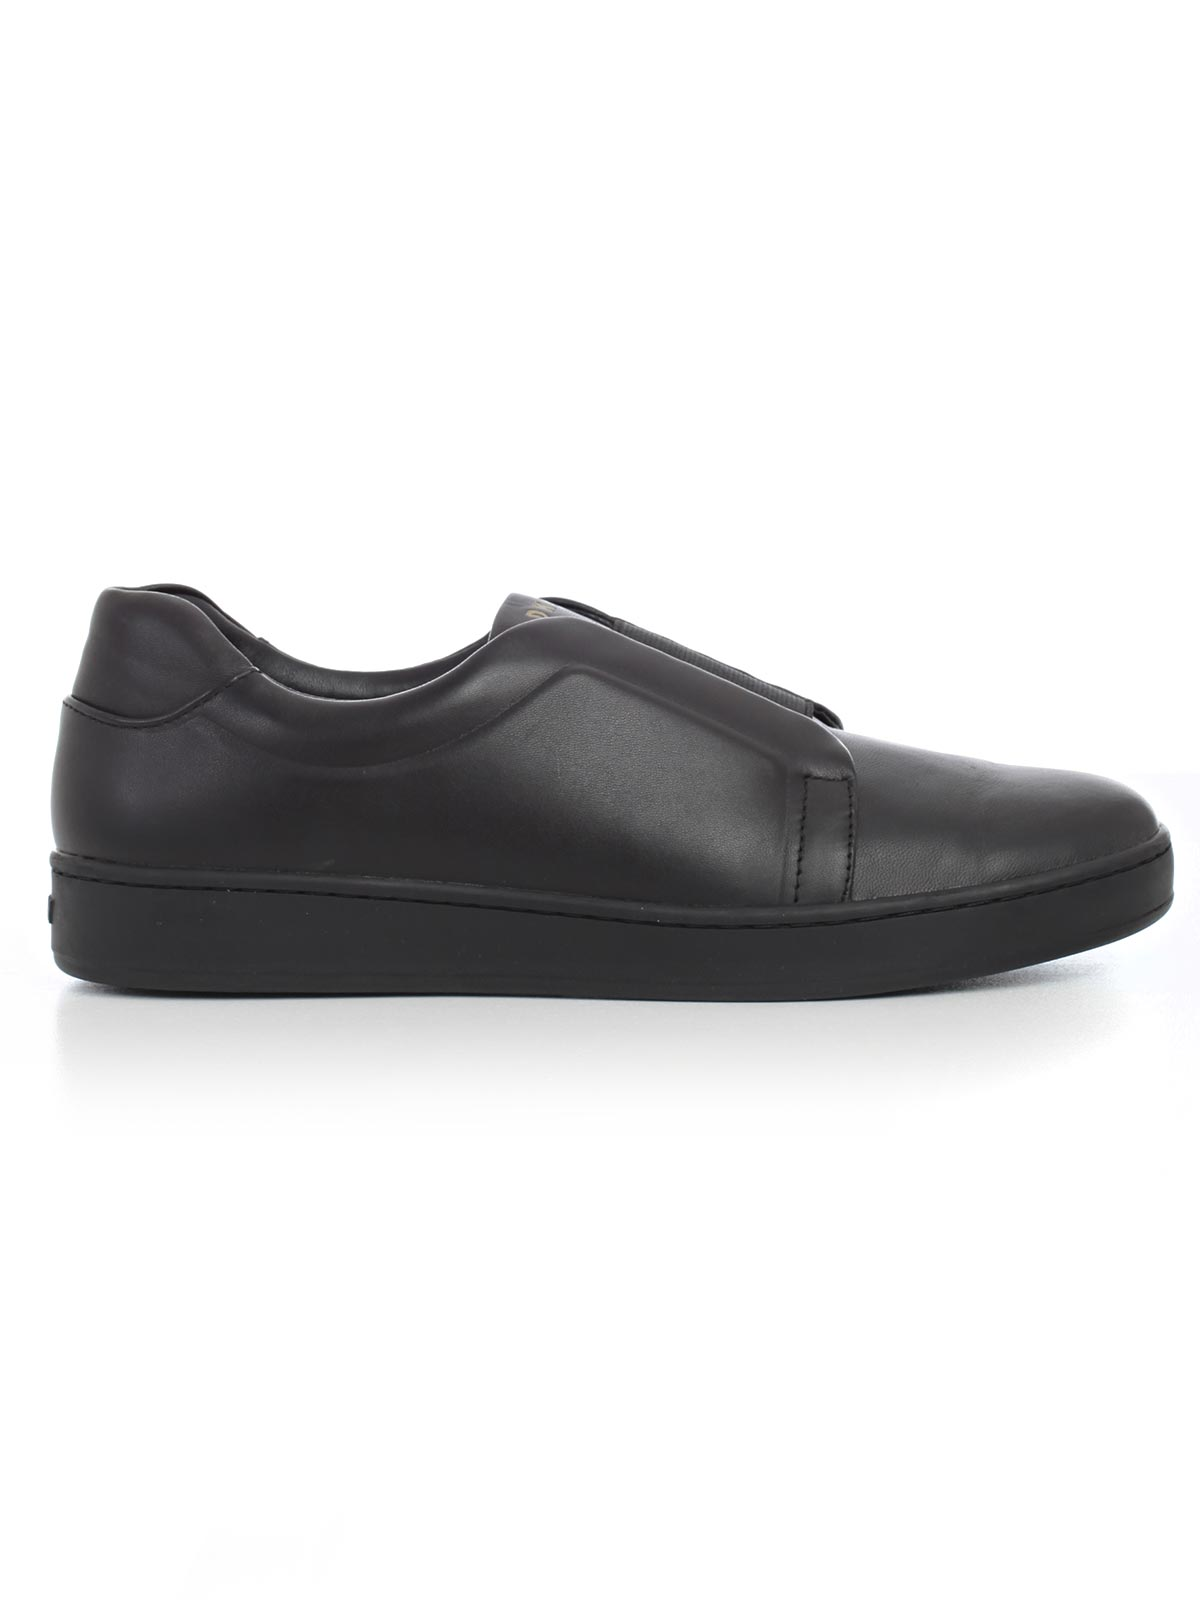 Picture of Dkny Footwear